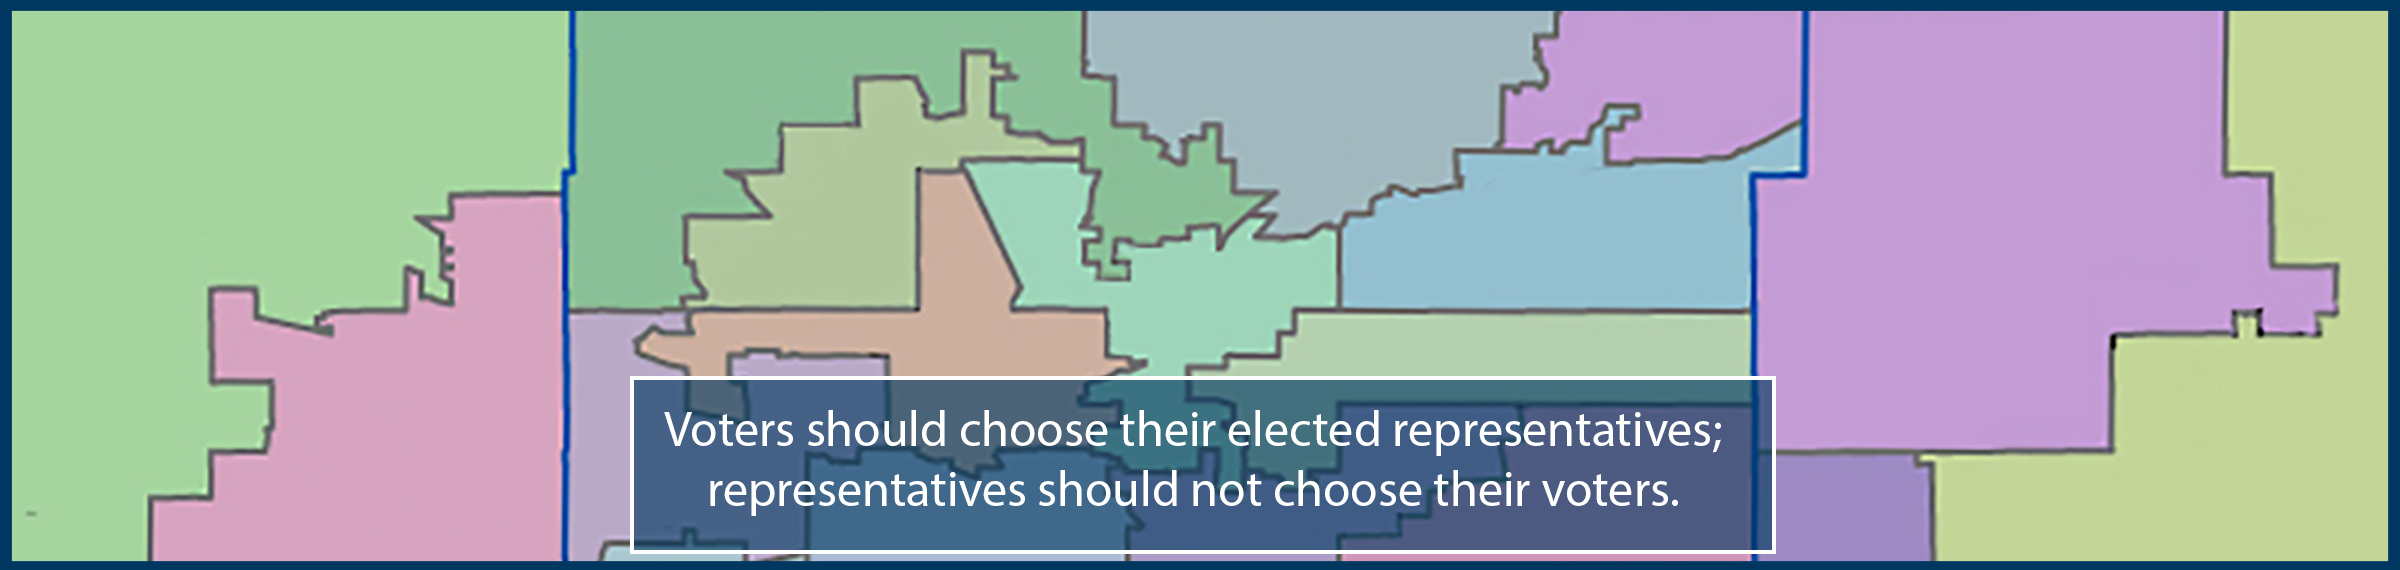 Voters should choose their representatives; representatives should not choose their voters